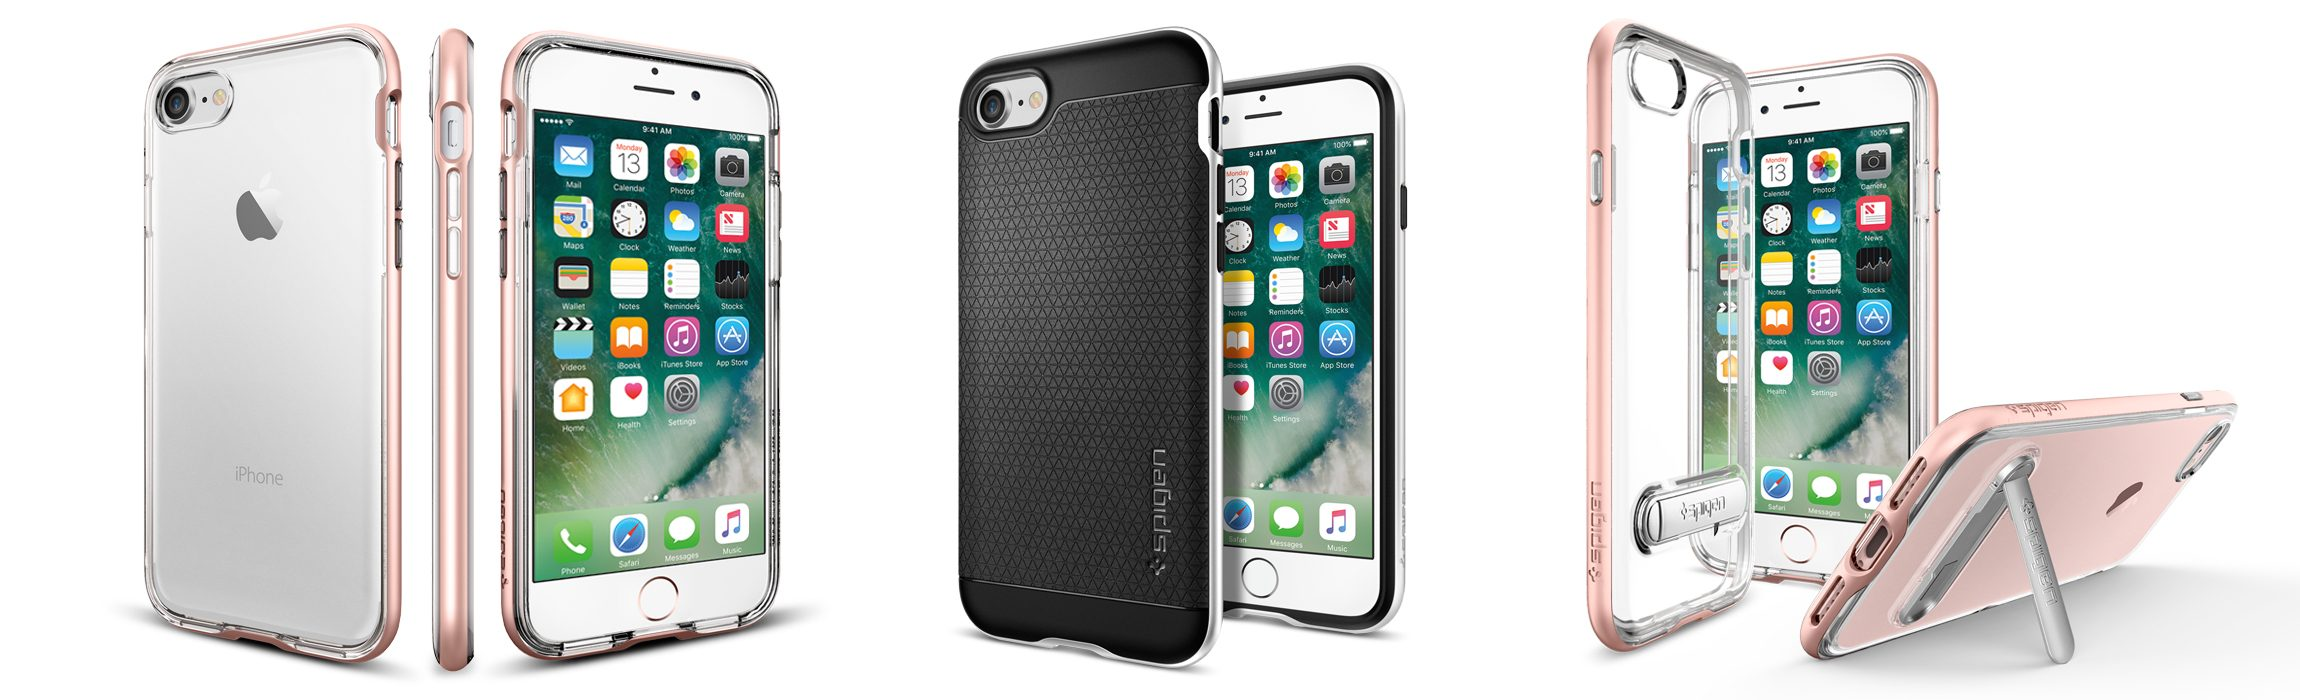 Funda Lifeproof Iphone  Plus